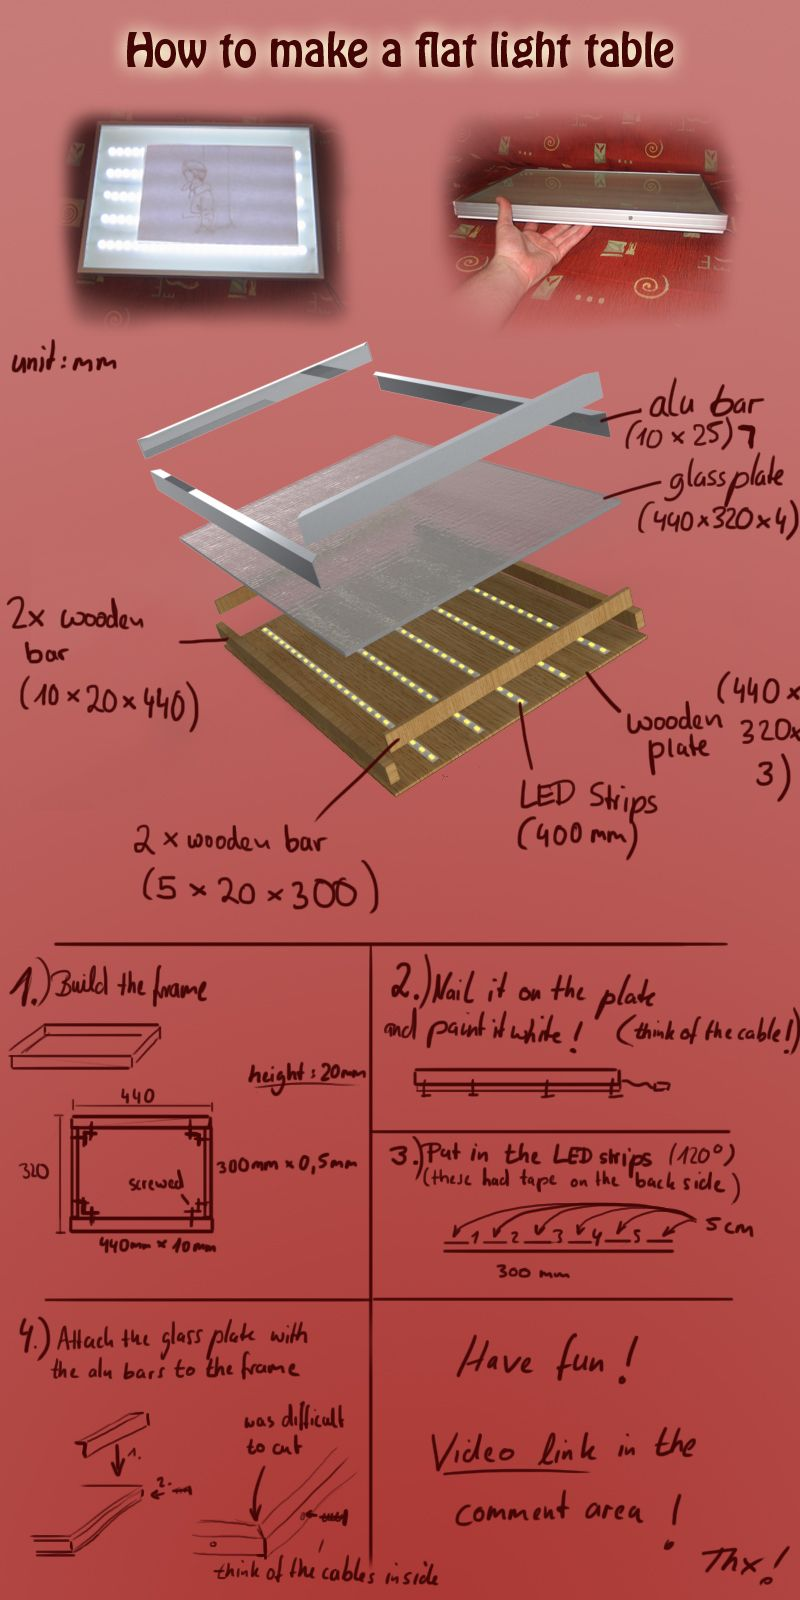 How To Make A Flat Light Table By Art4fun Kun Deviantart